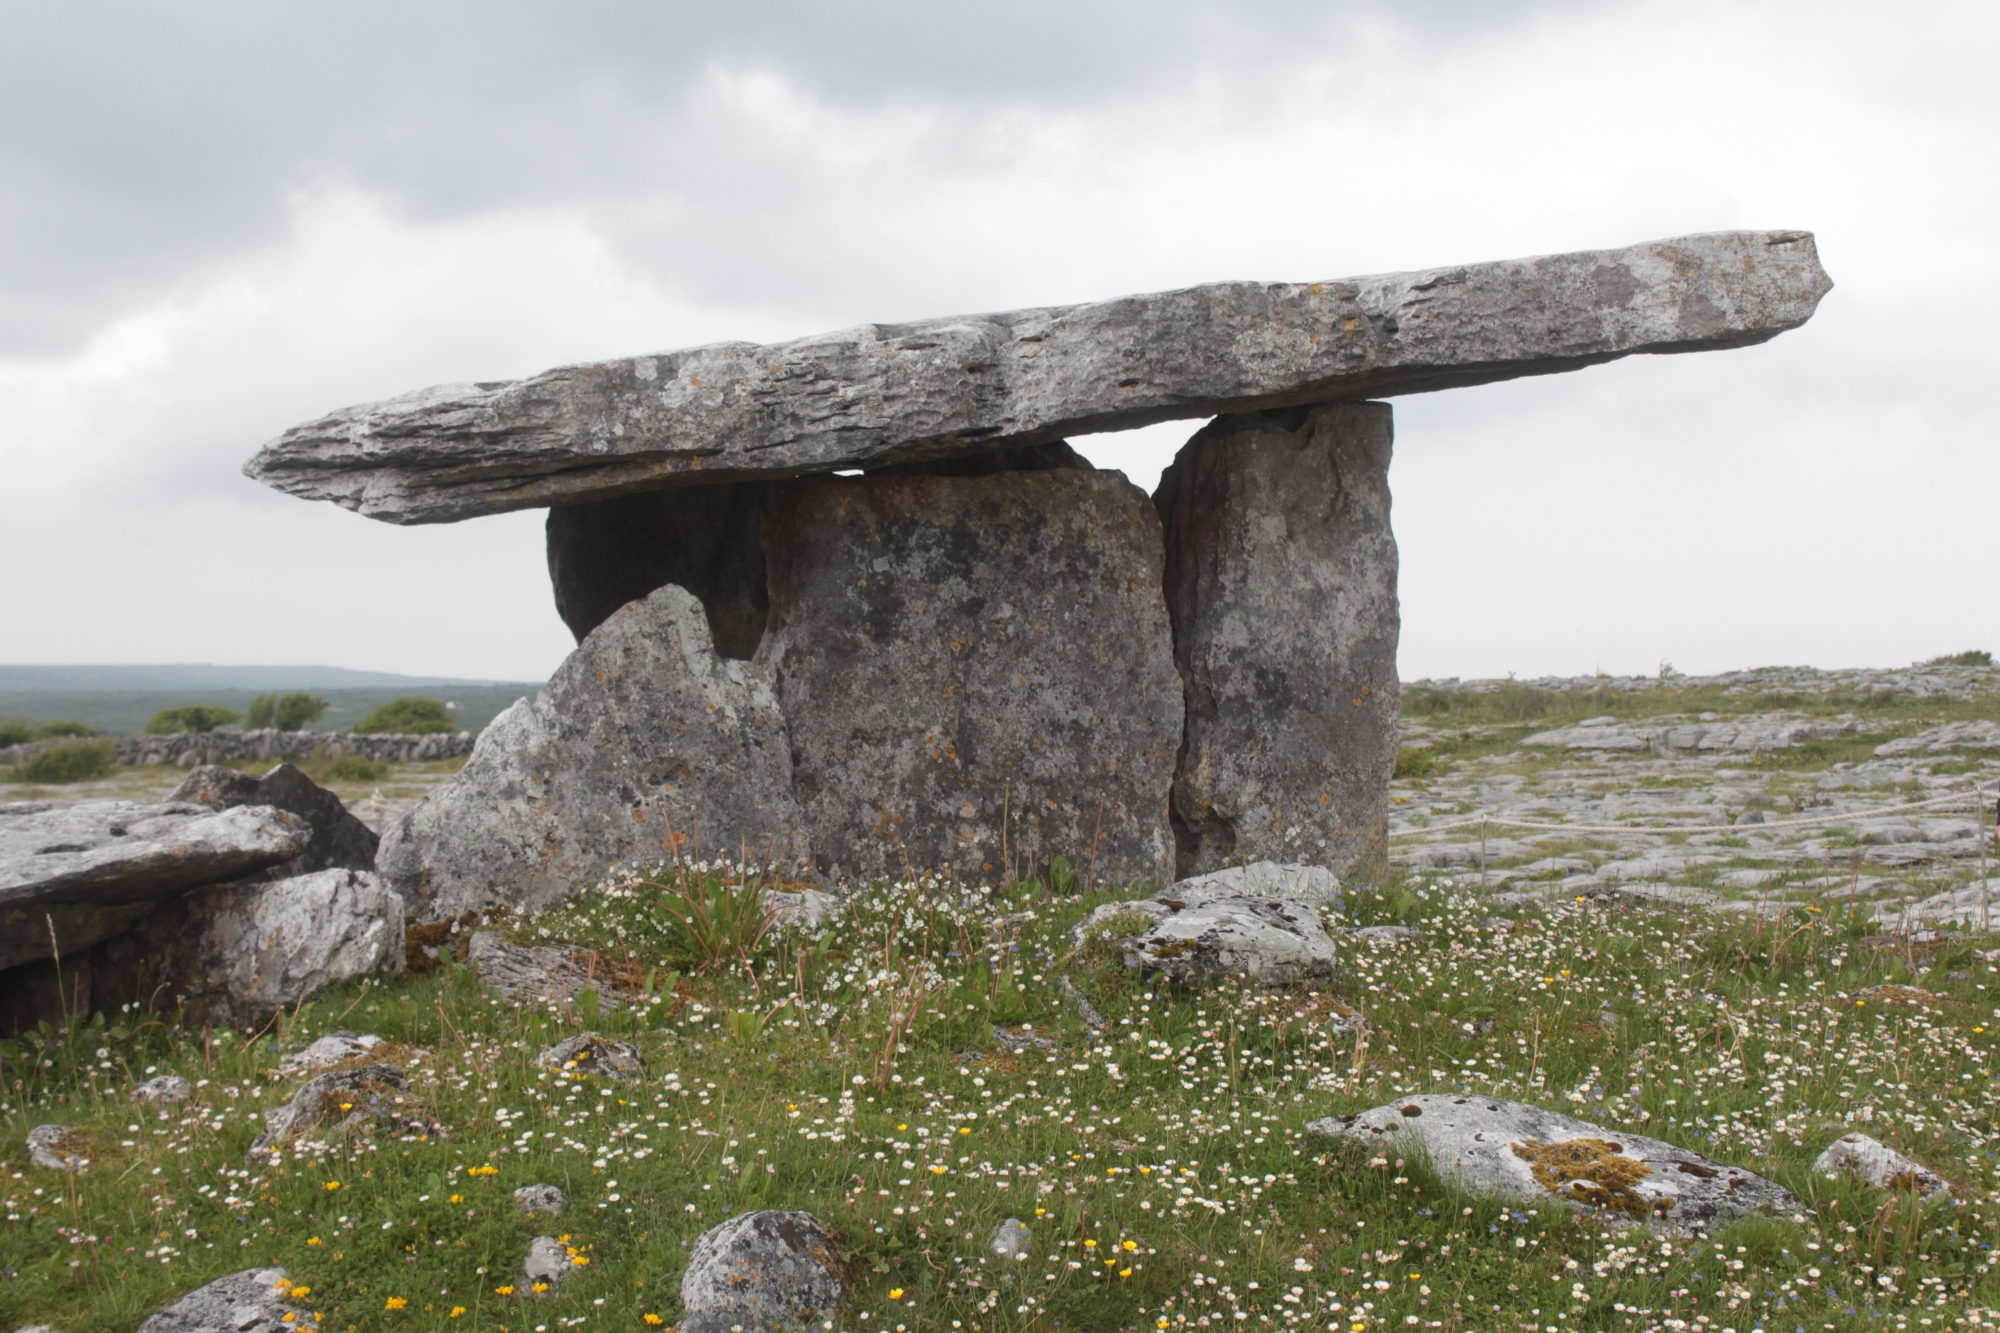 Poulnabrone Dolmen, Poulnabrone Portal Tomb, Portal Tomb, Ireland, County Clare, travel, photography, travel photography, Ireland landscape photography, landscape photography, photos, pictures, images